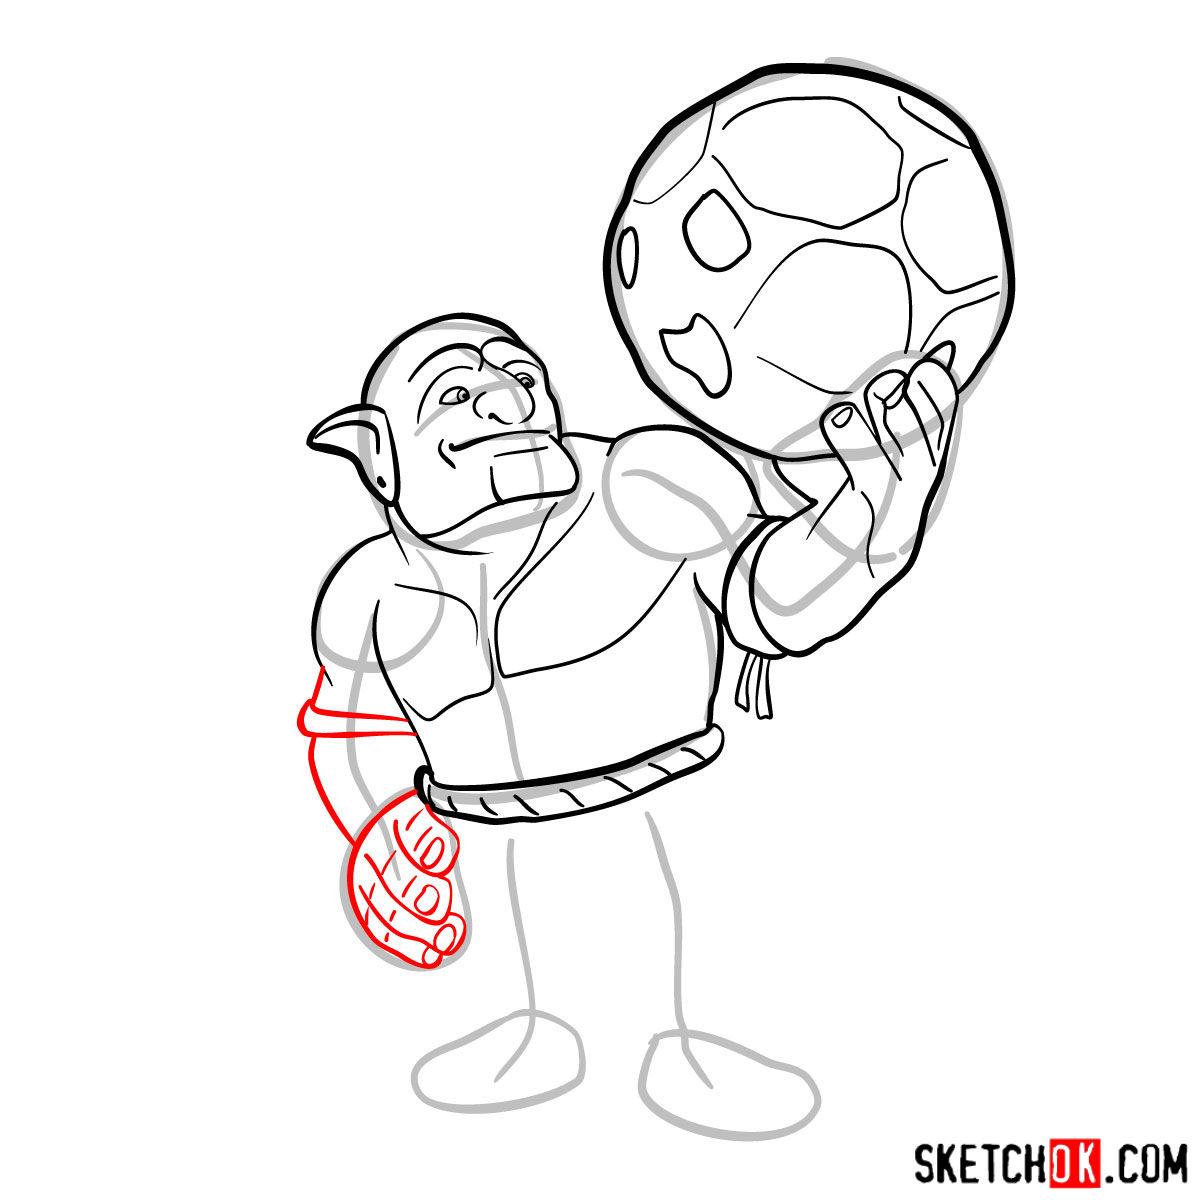 How to draw Bowler from Clash of Clans - step 07